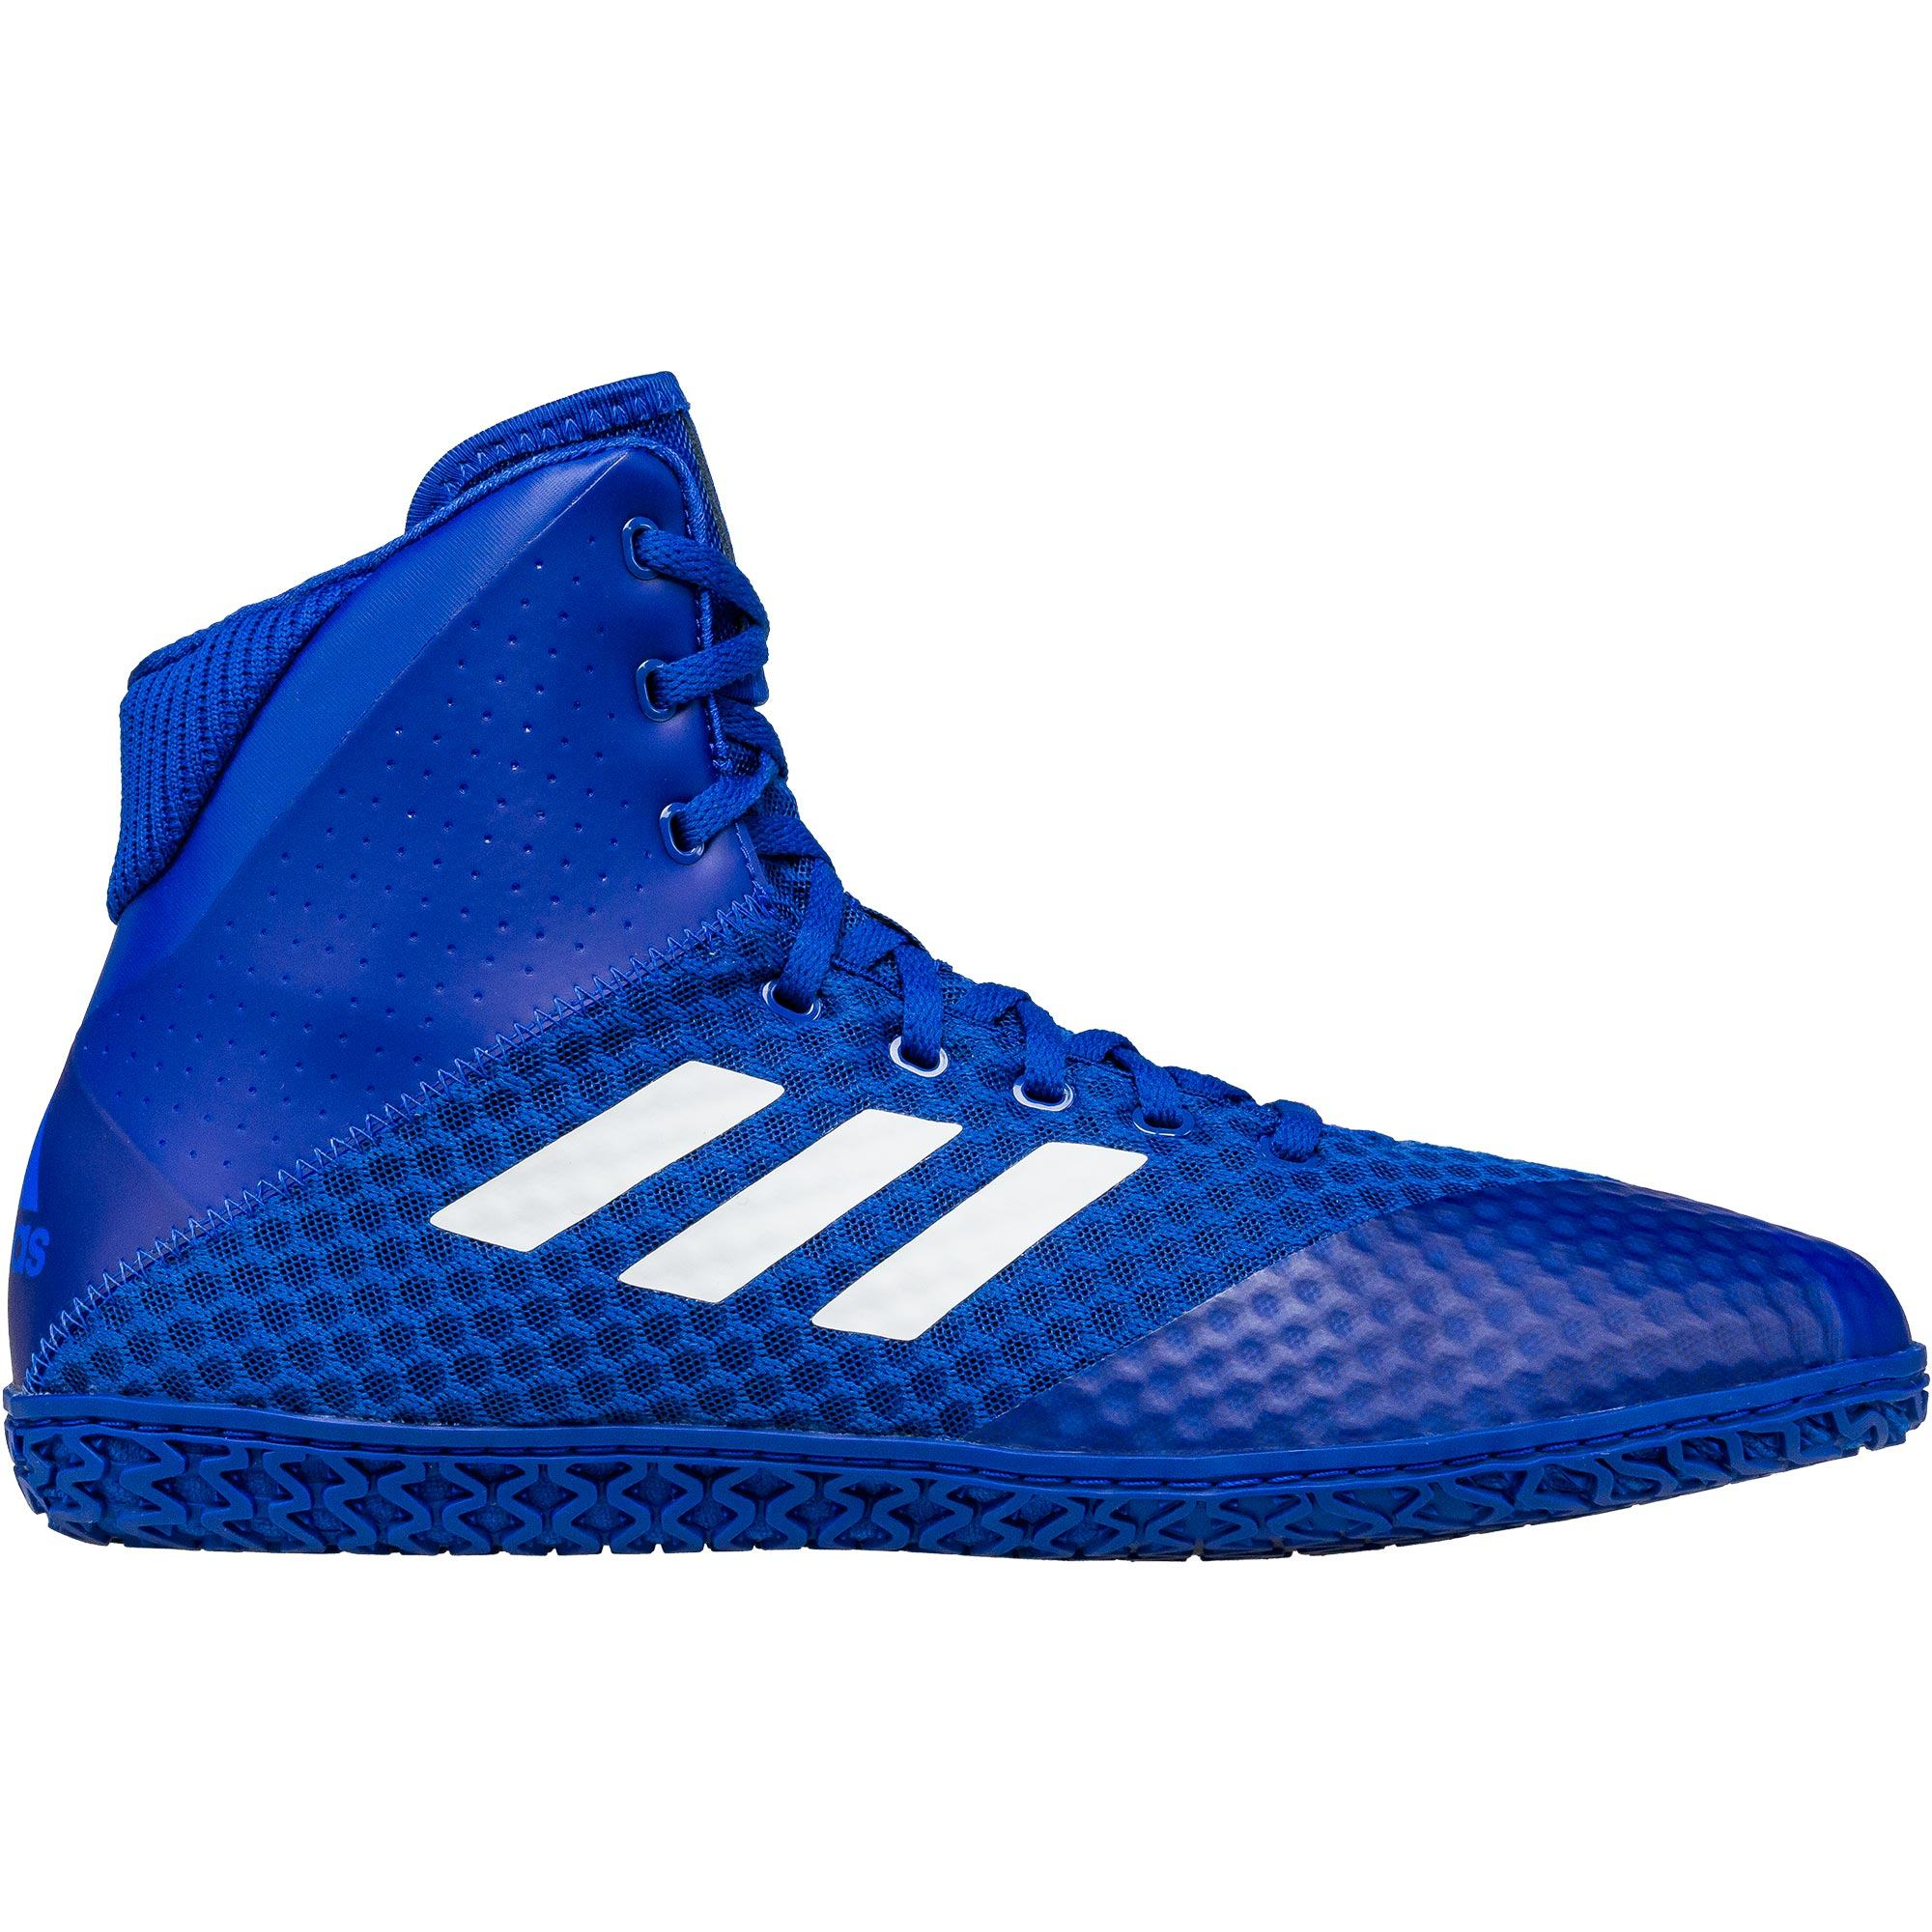 4a29c34a13f Adidas Mat Wizard 4 Shoes